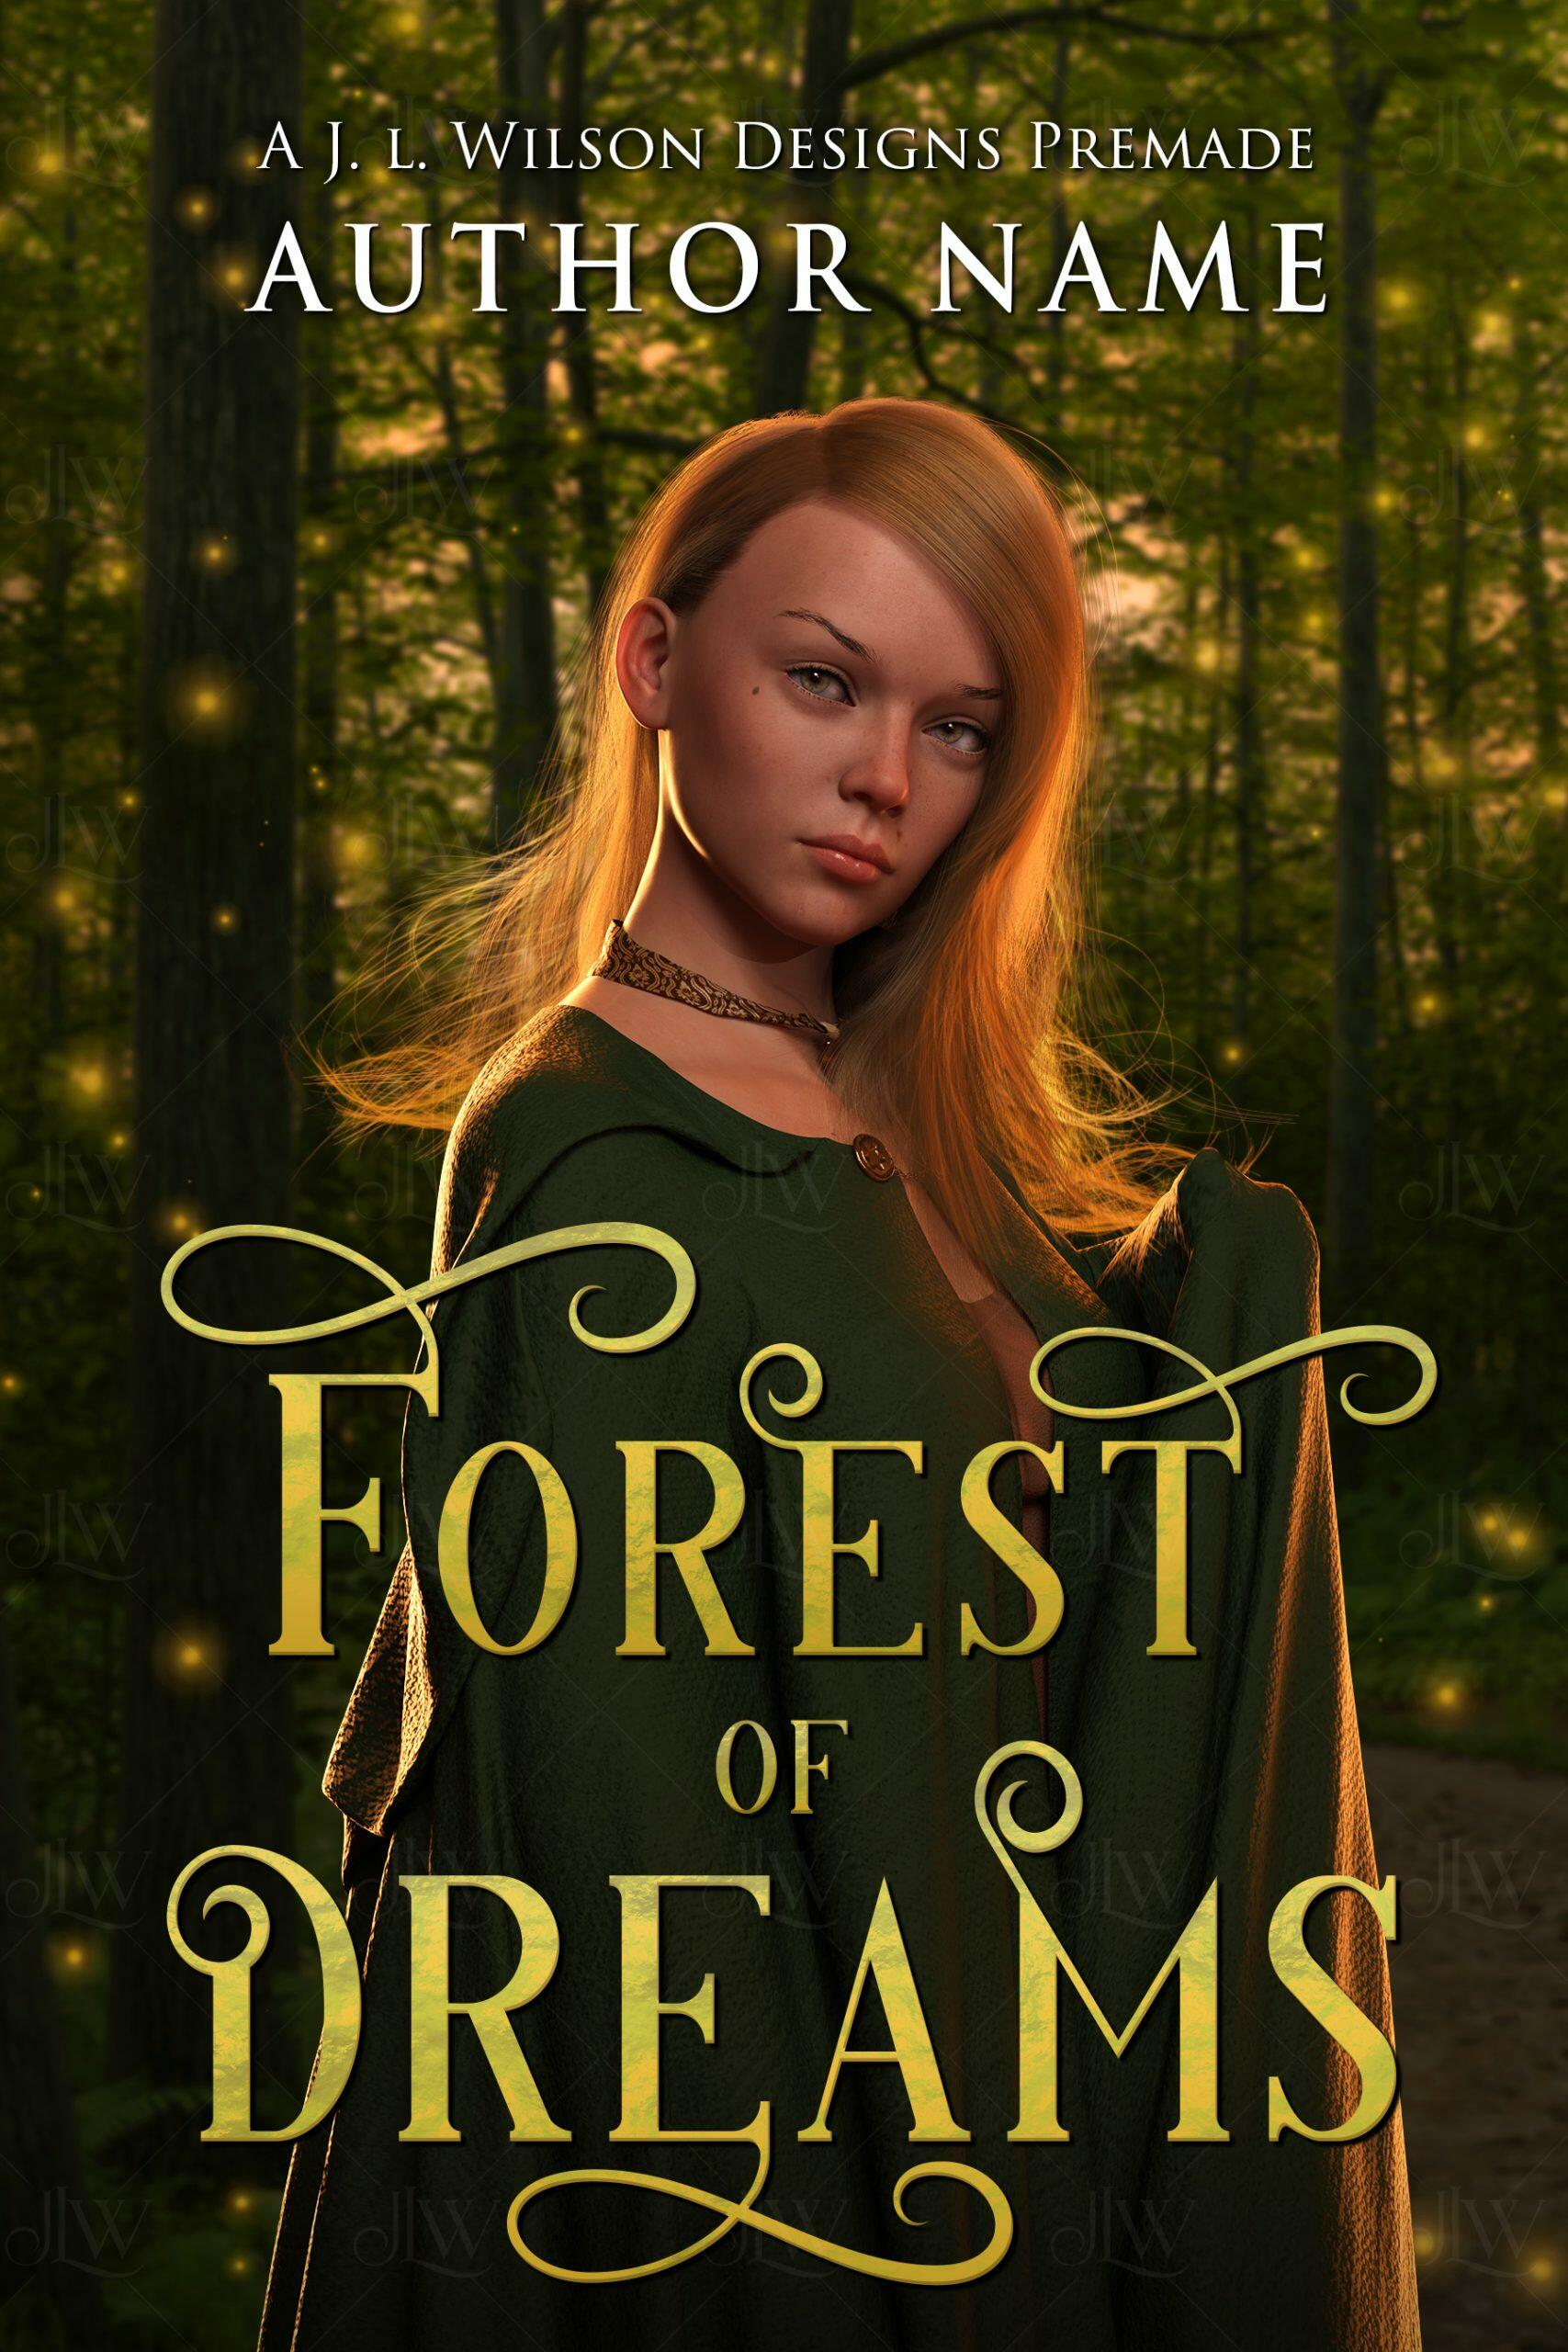 A fantasy book cover with a beautiful woman in a green cloak in a magical glowing forest